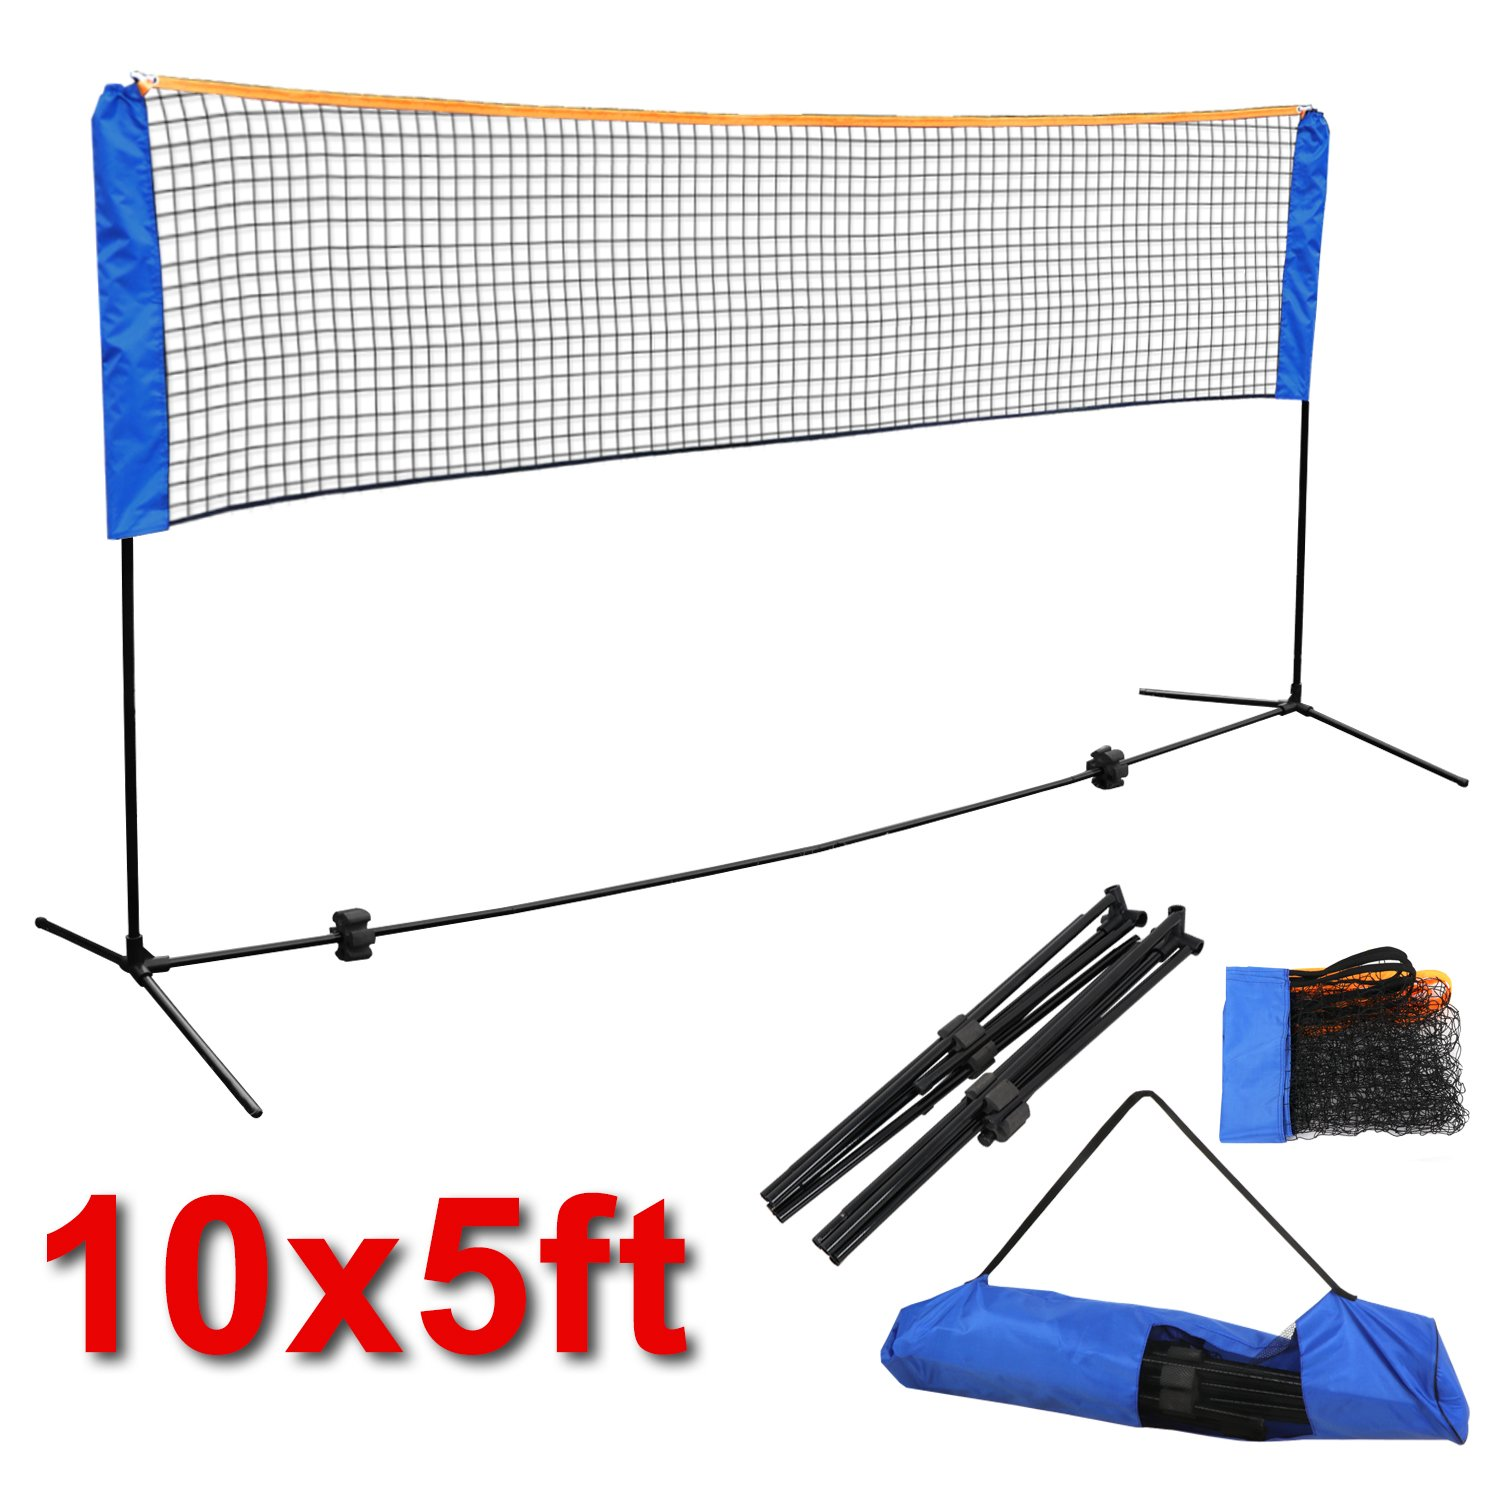 Smartxchoices 10ft Portable Badminton Net and Frame Set Professional Volleyball Training Practice Net with Poles Height Adjustable Net with Carrying Bag